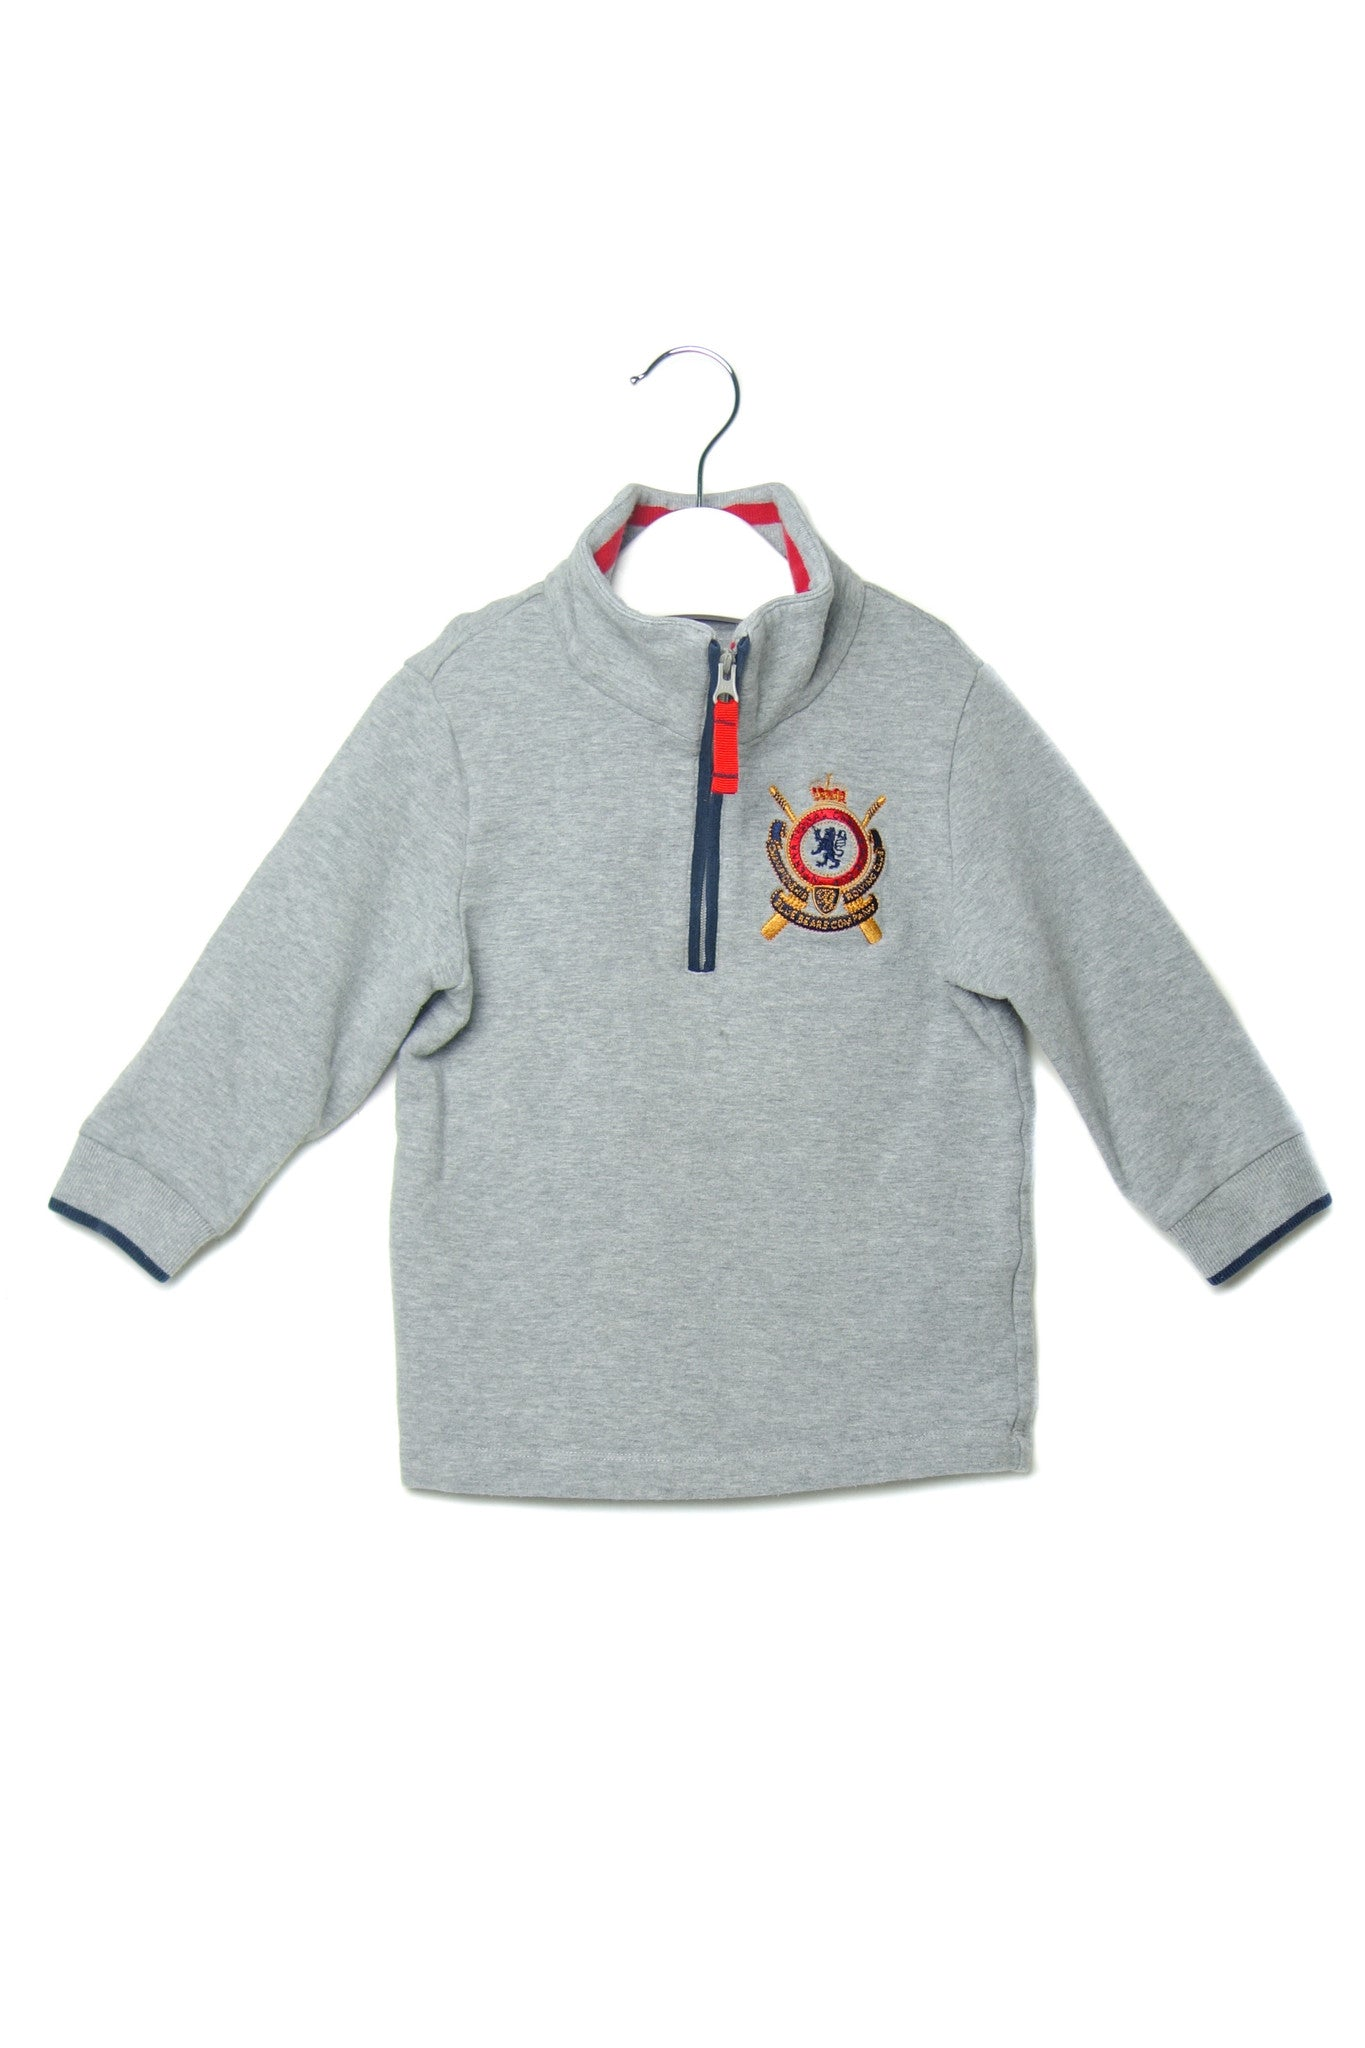 100012032 Nicholas & Bears Kids~Sweatshirt 2T at Retykle